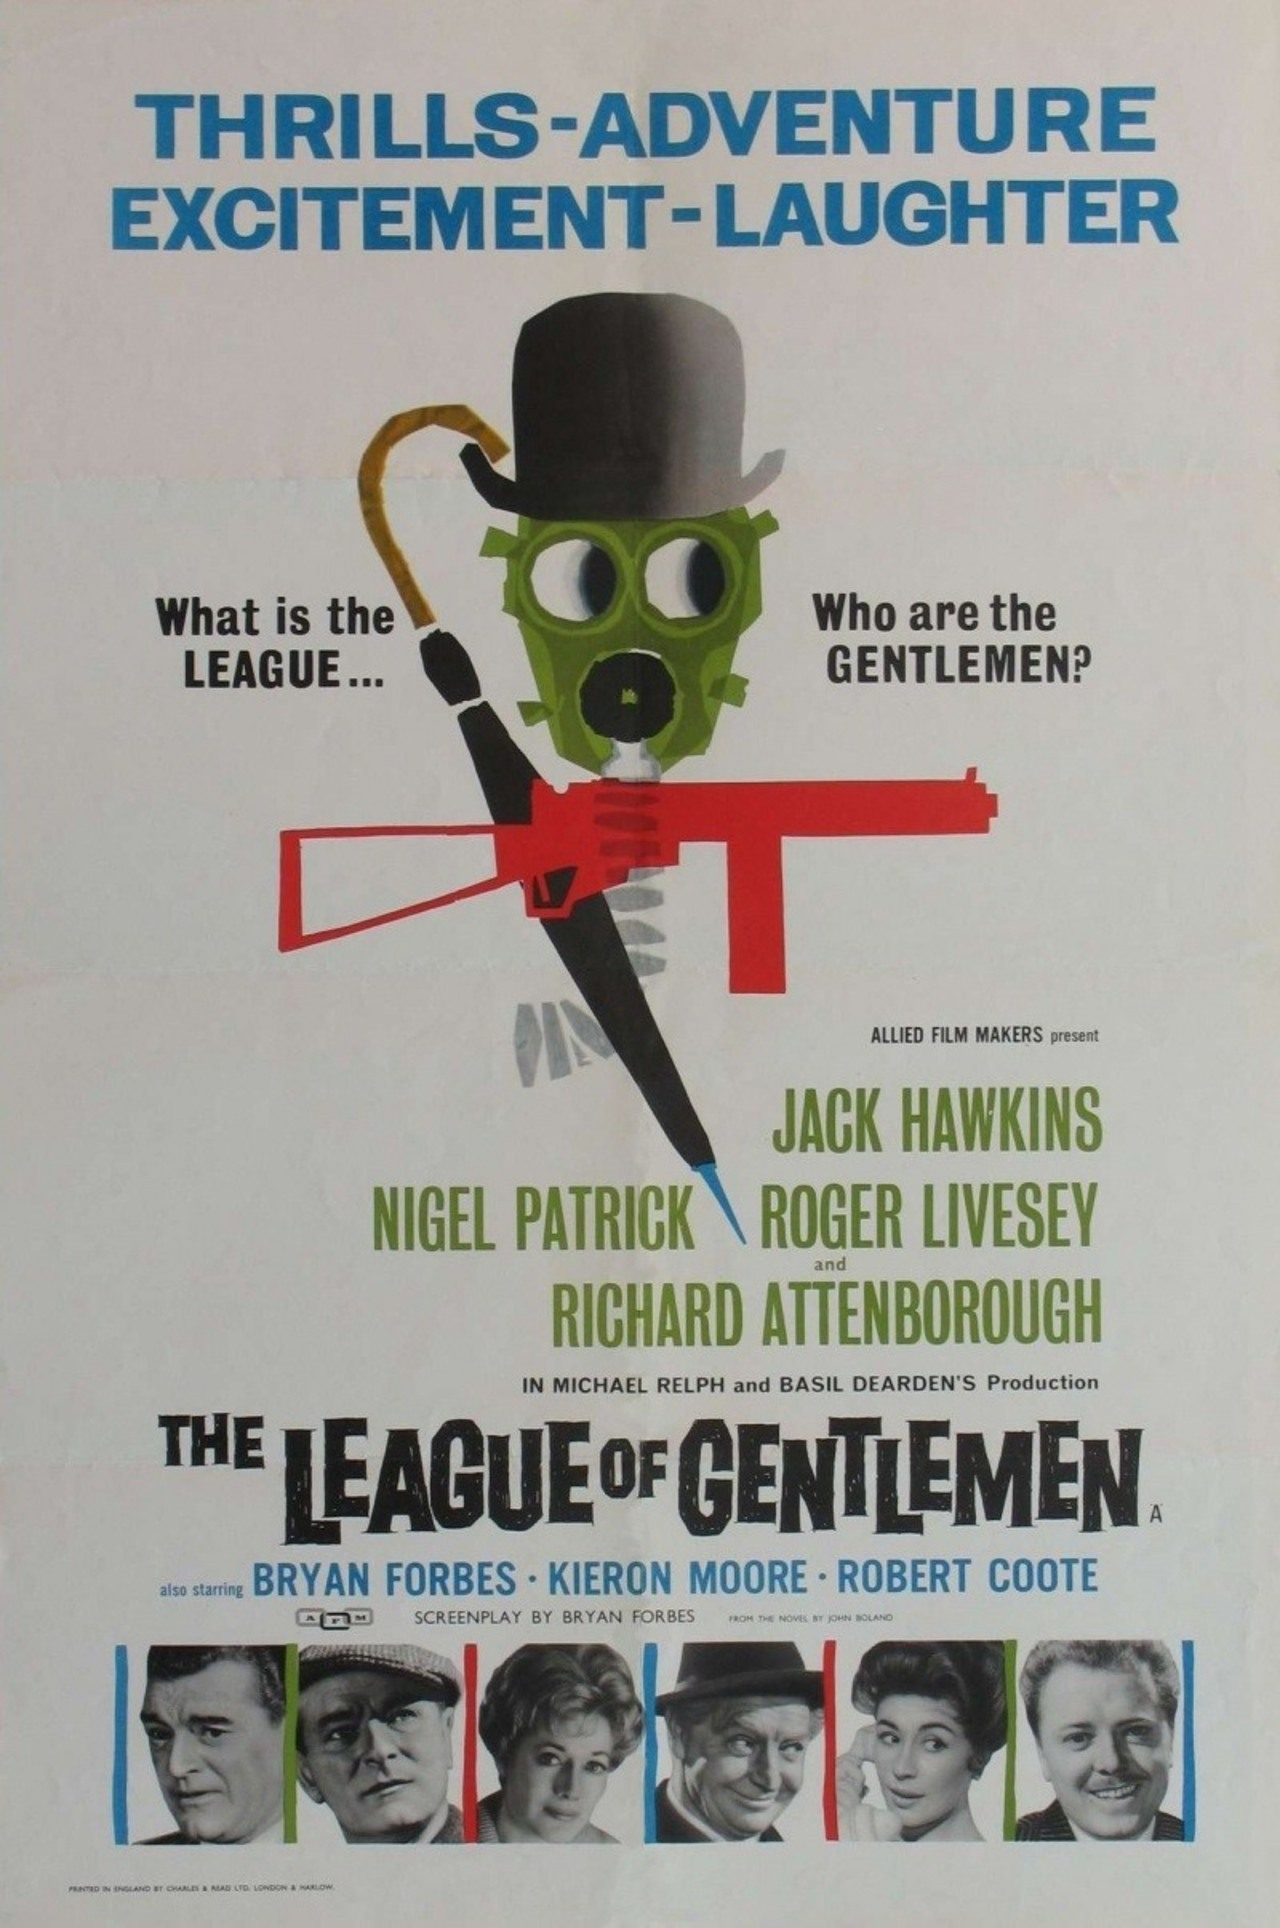 The League of Gentlemen kapak